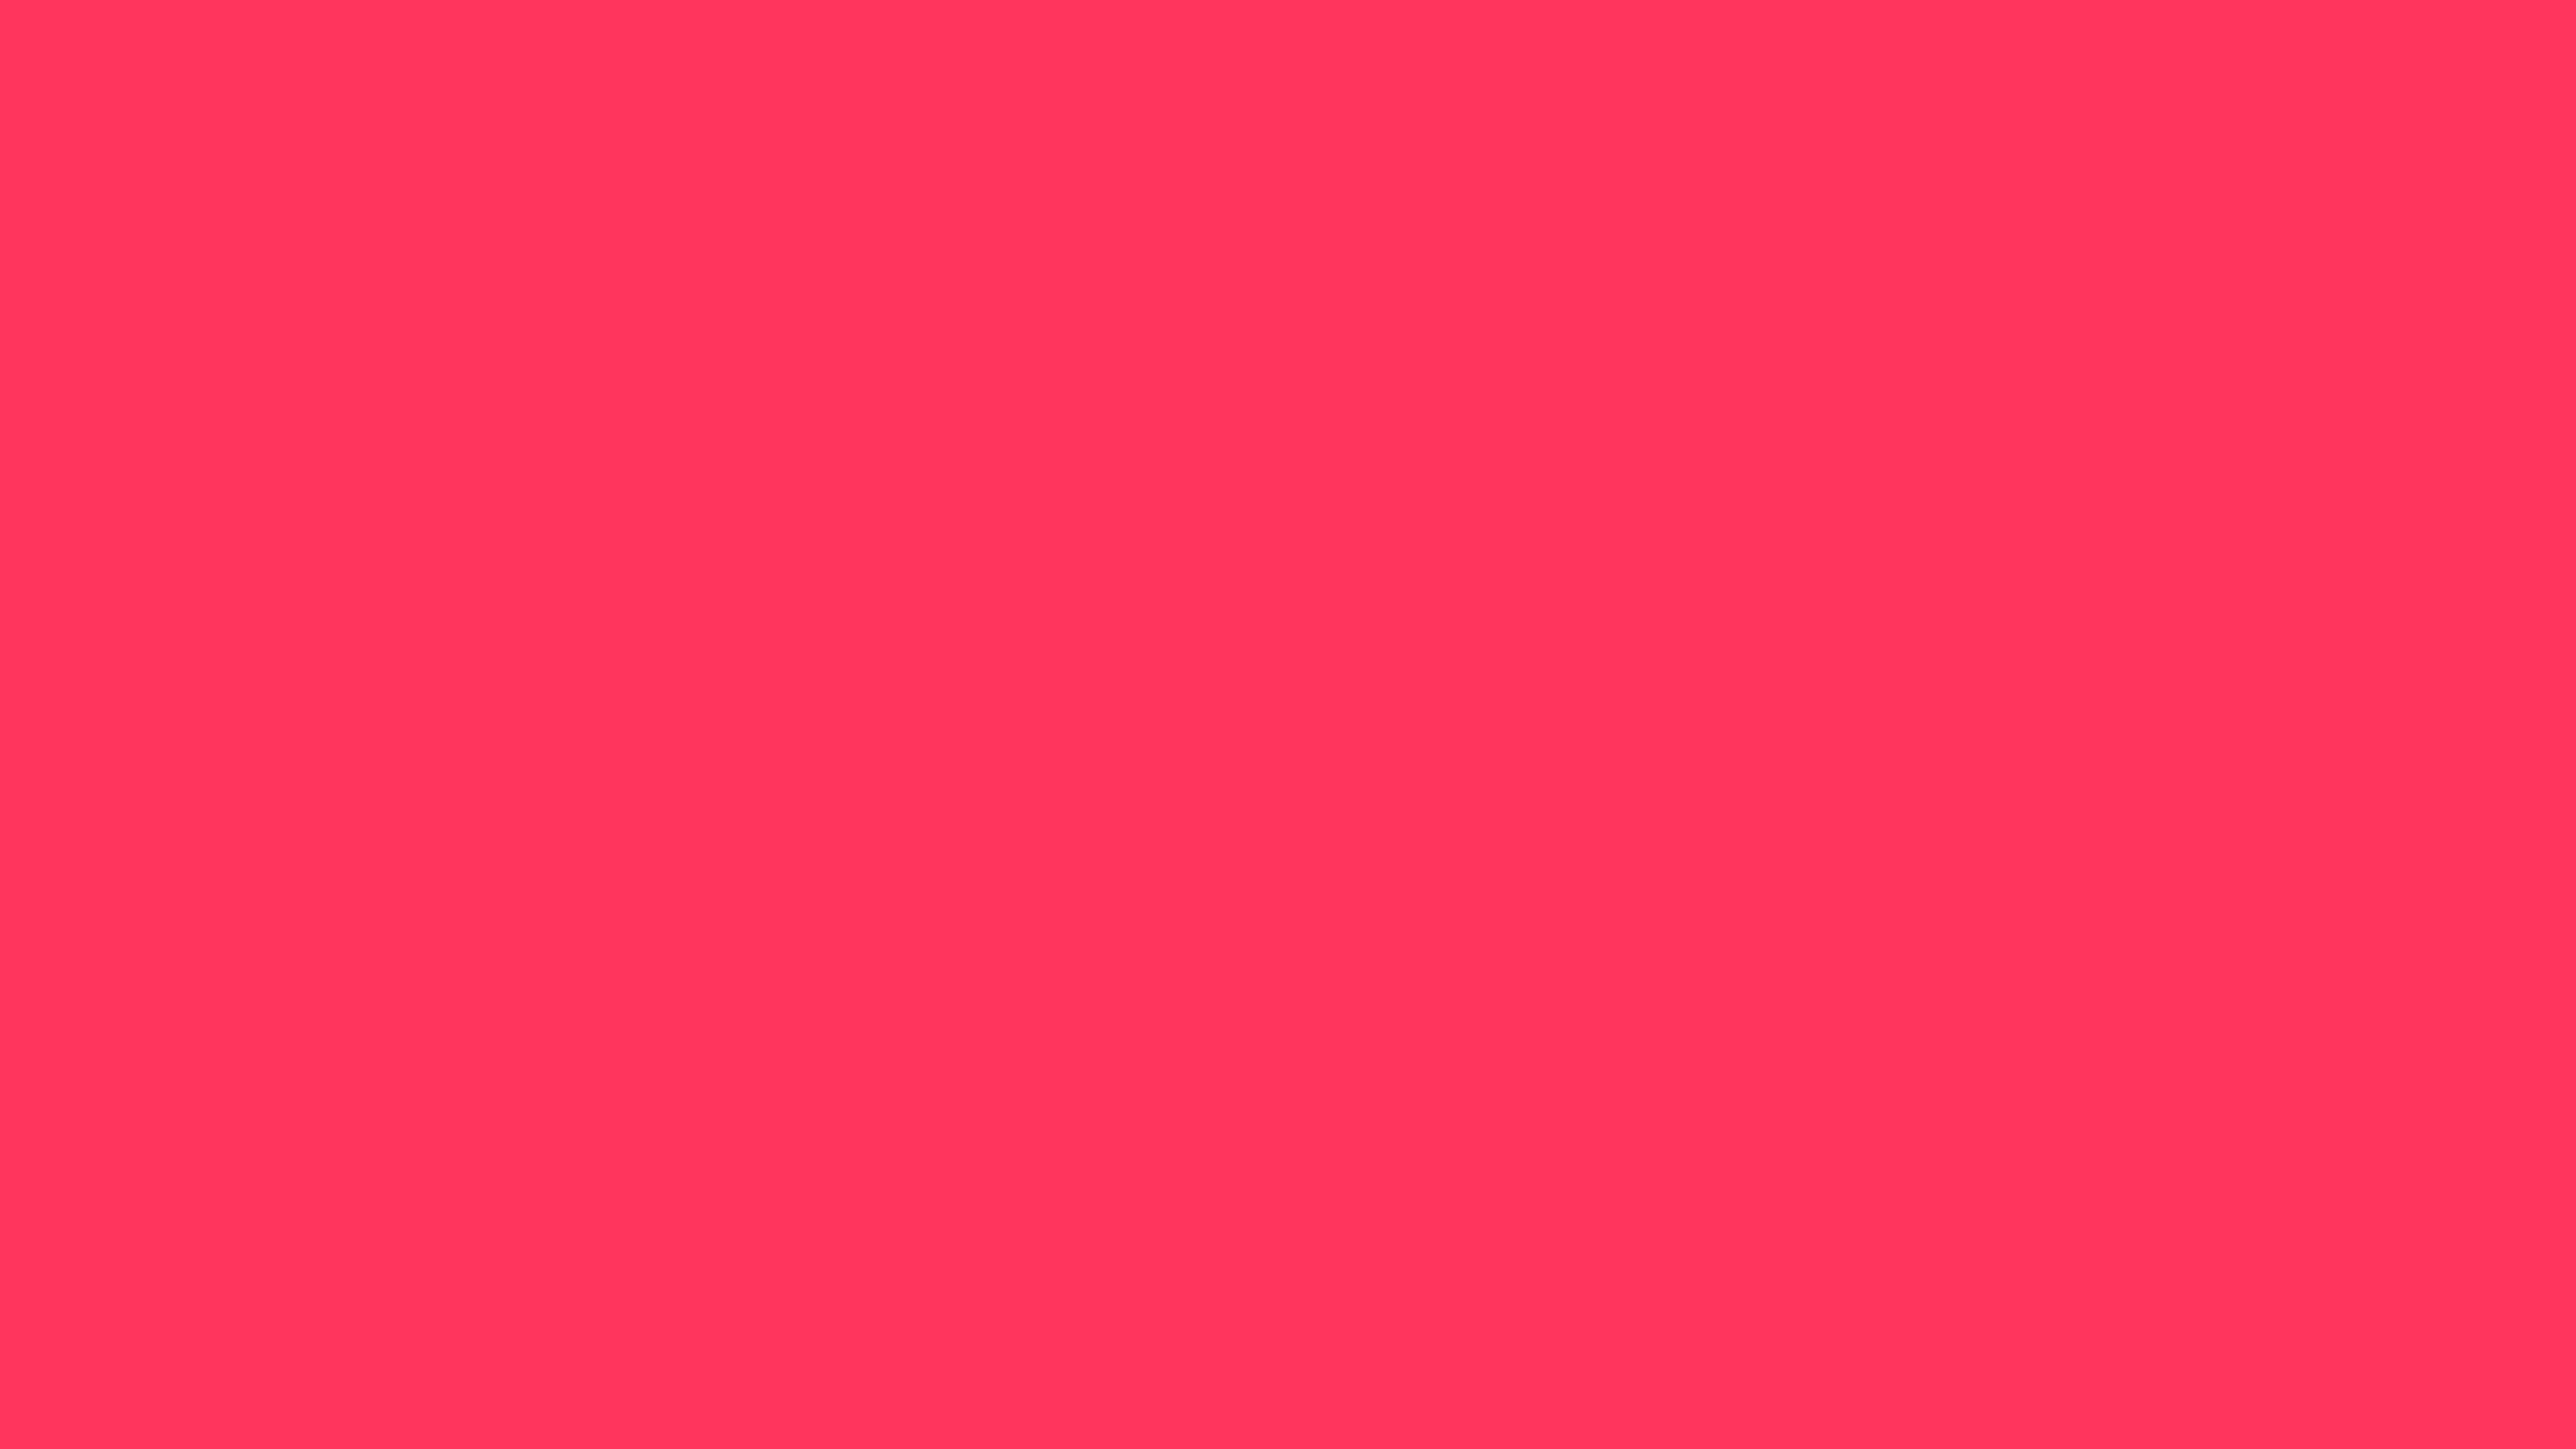 3840x2160 Radical Red Solid Color Background